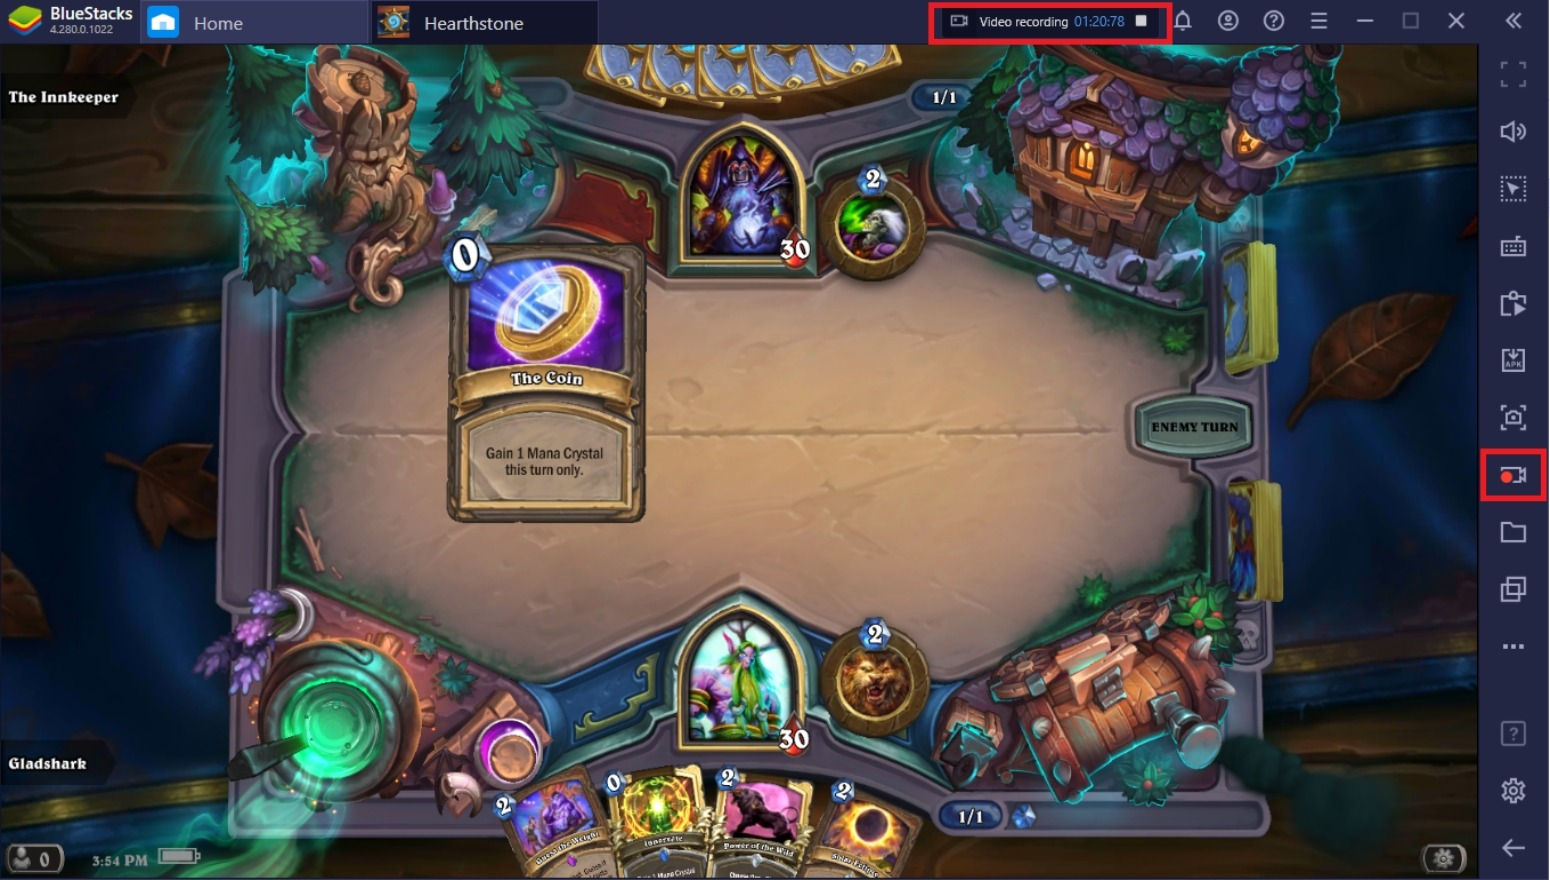 How to Play Hearthstone on PC with BlueStacks